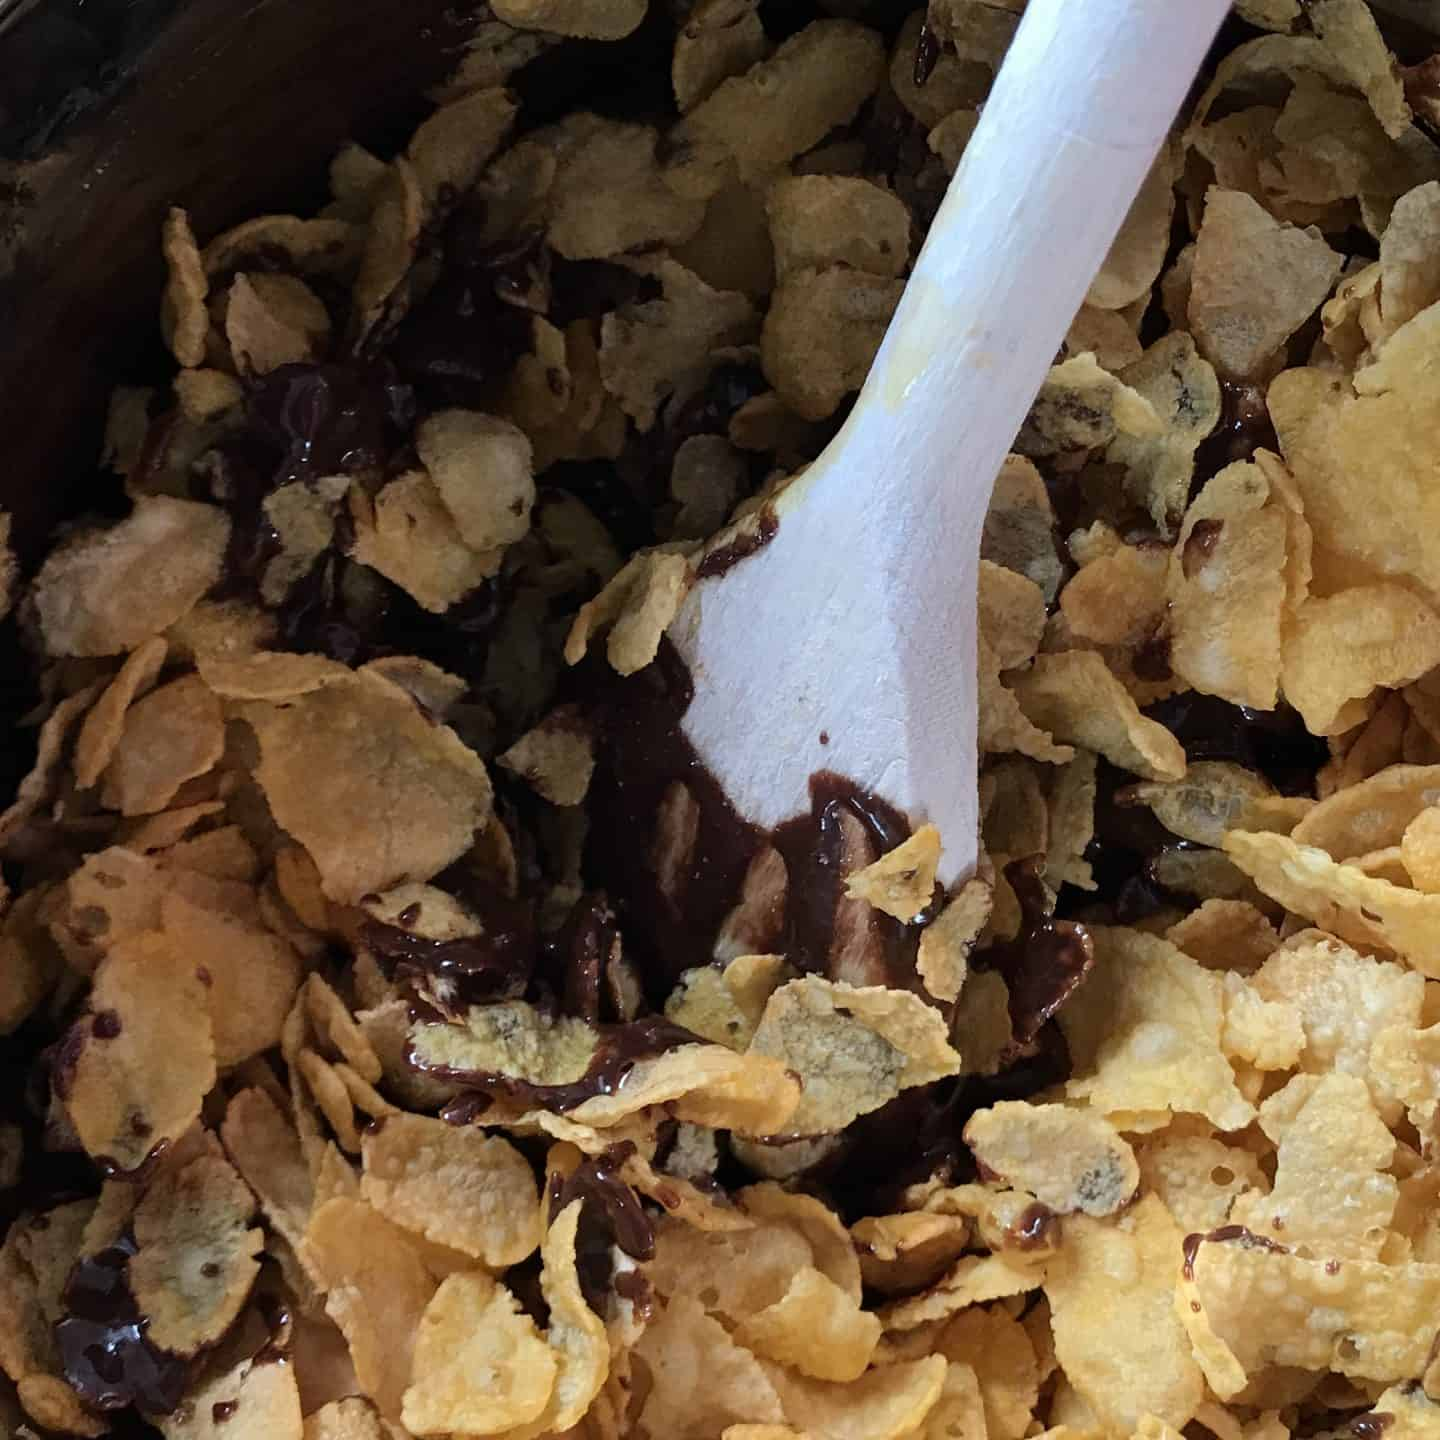 Mix cornflakes into the chocolate mix